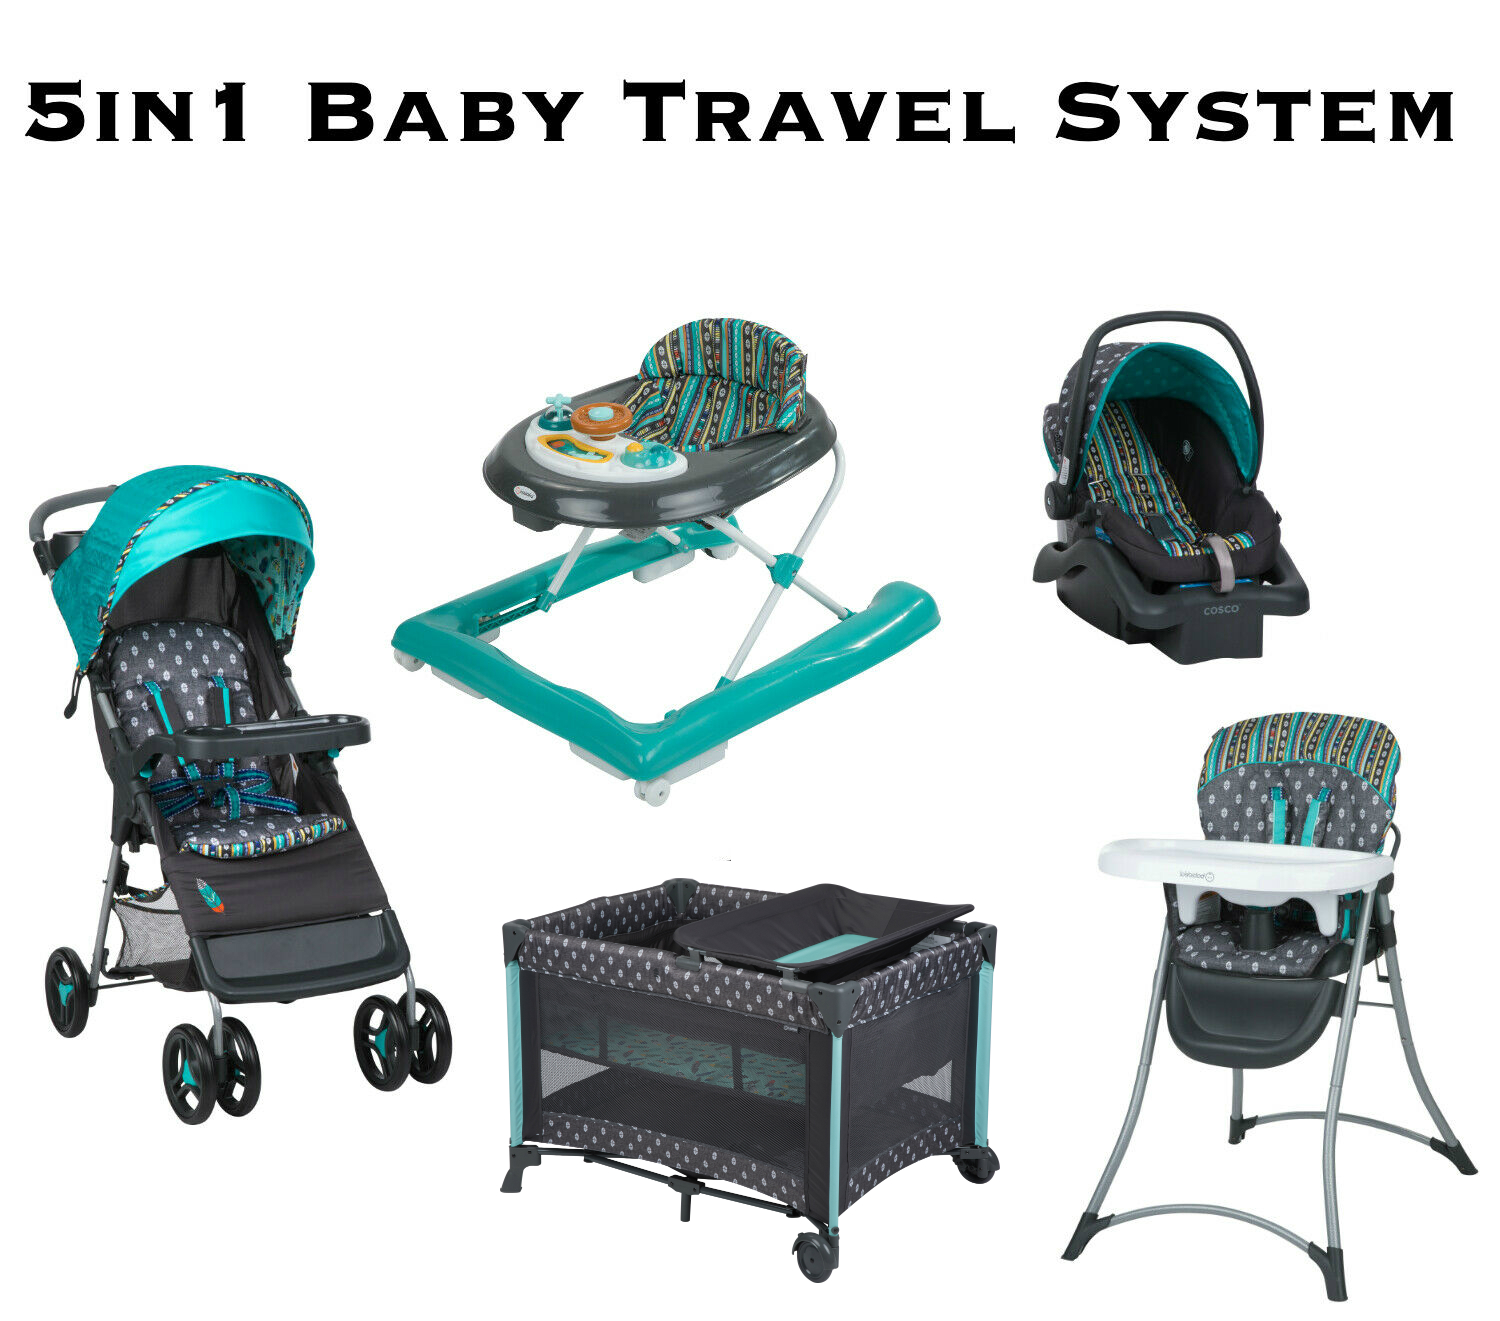 Stroller Travel System Ebay Details About Baby Stroller With Car Seat Travel System High Chair Infant Playard Walker Set